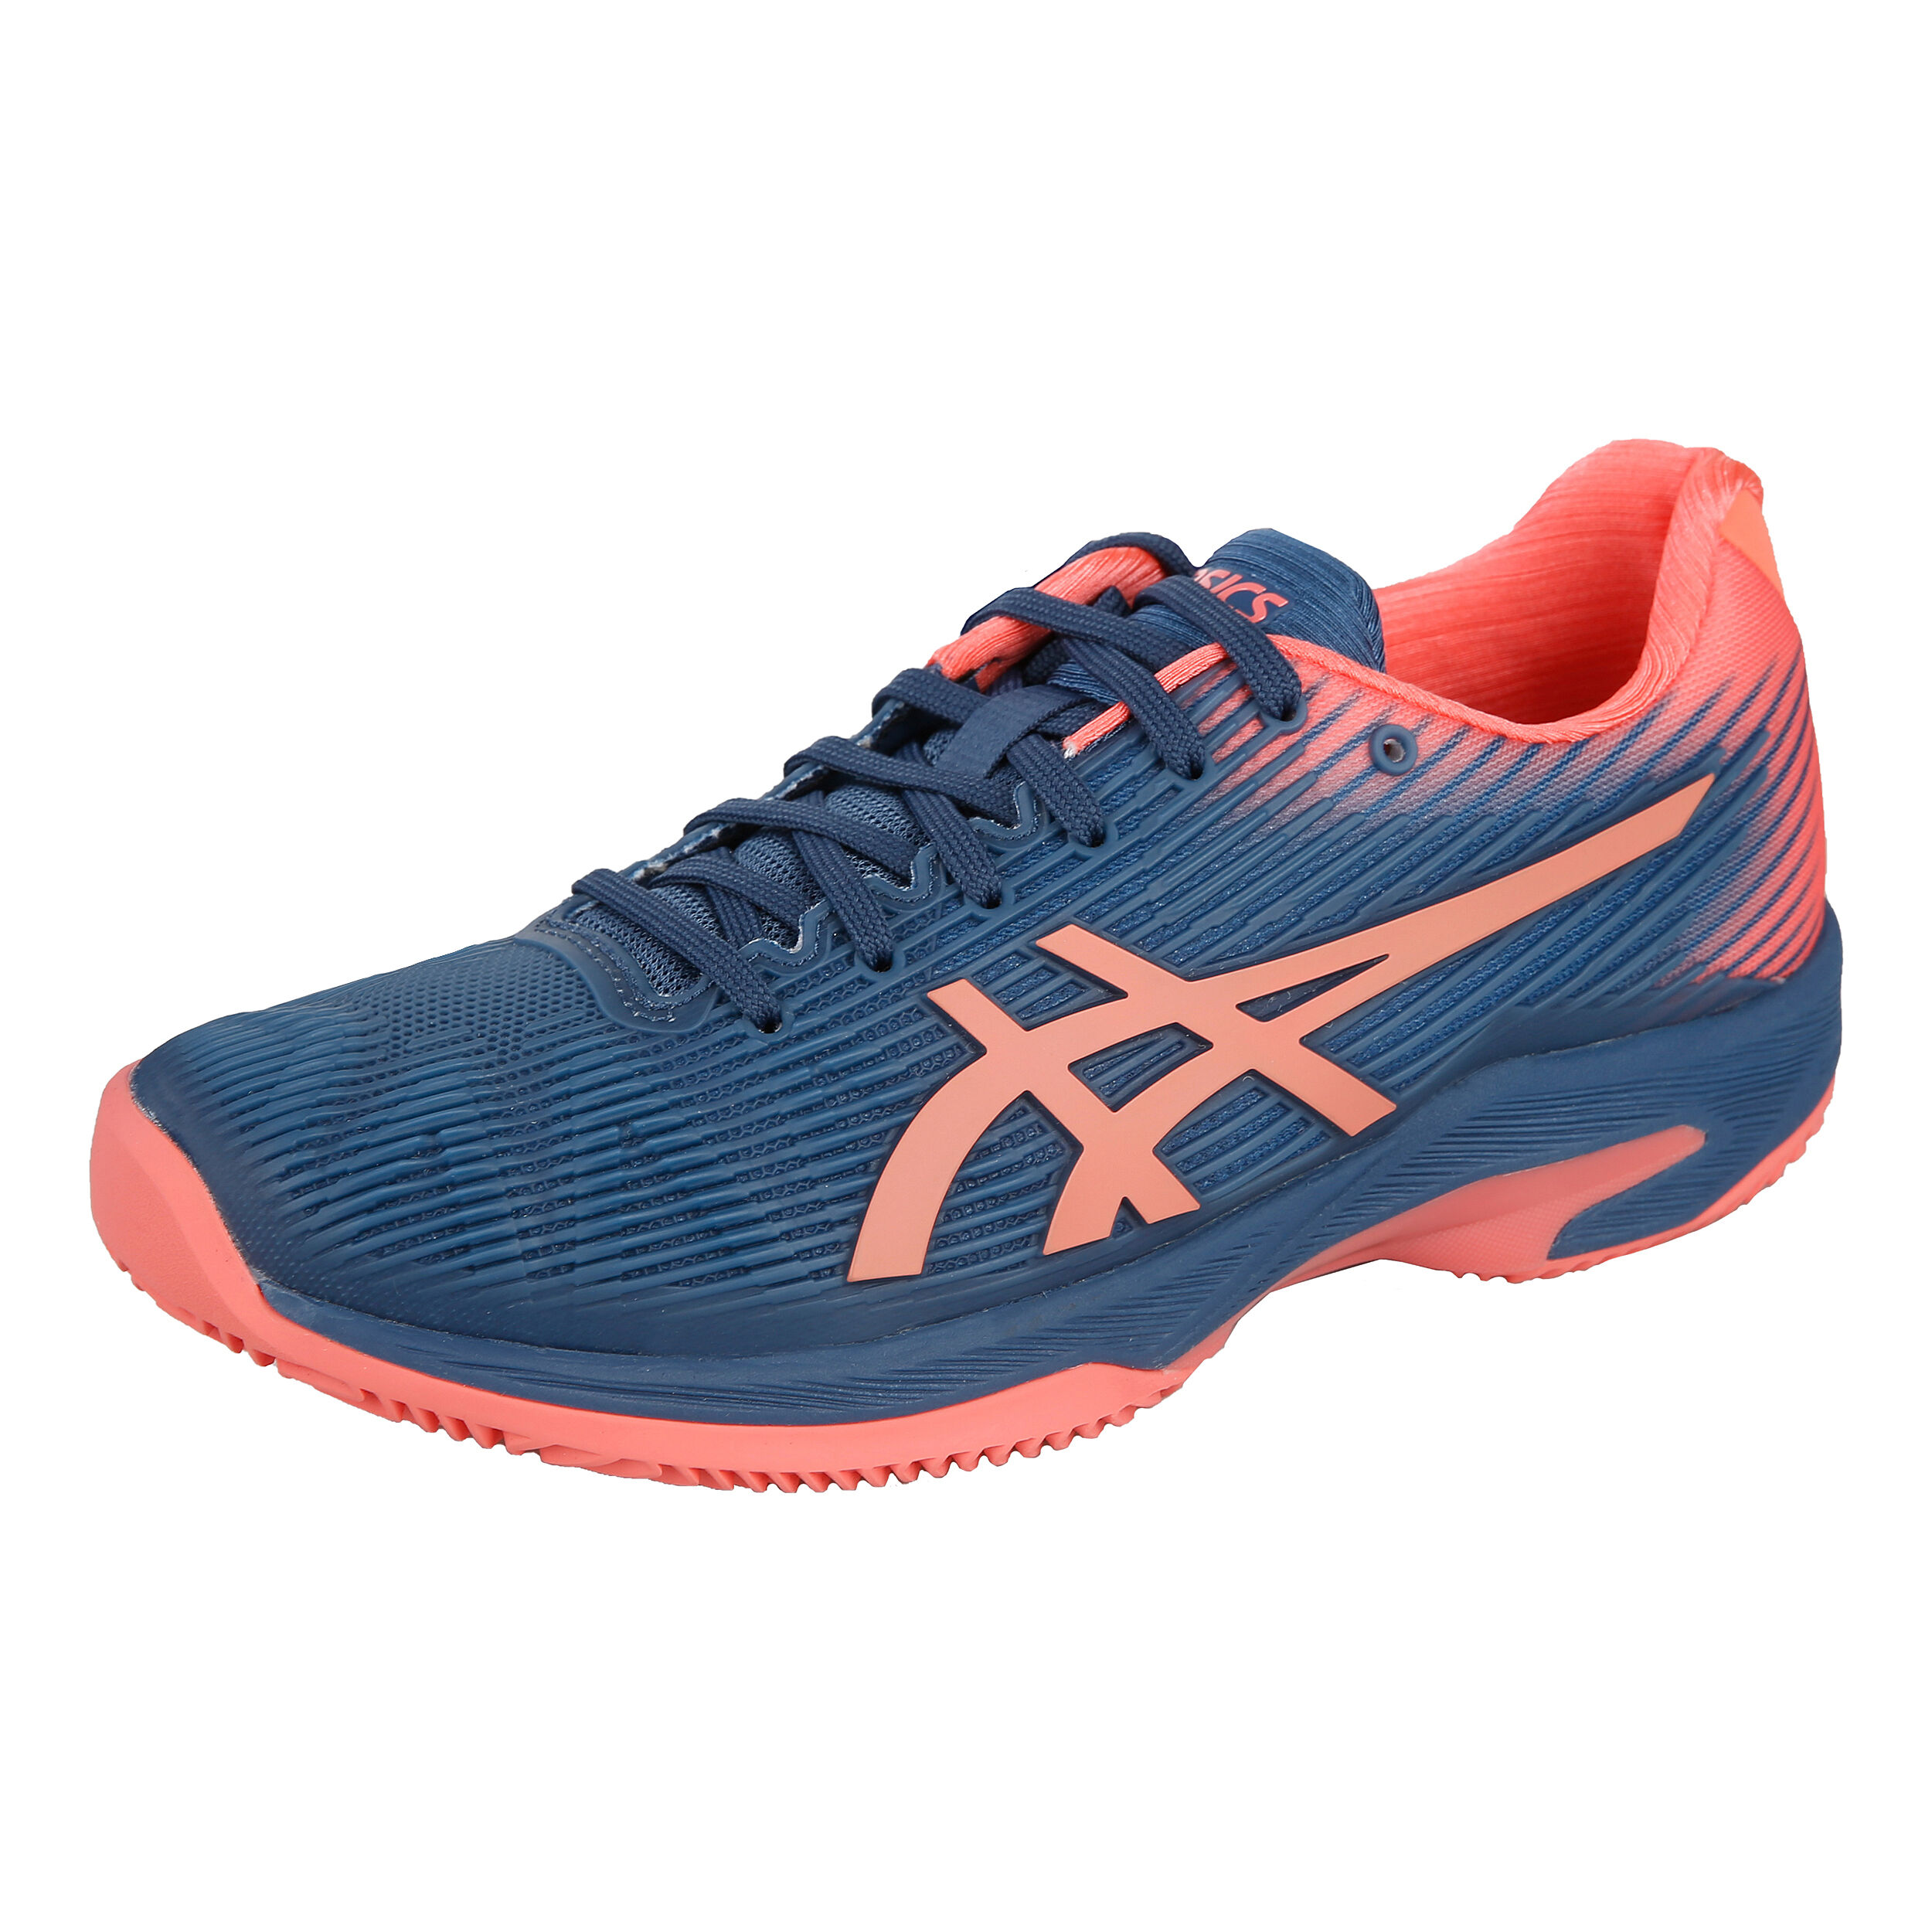 Asics Solution Speed FF Sandplatzschuh Damen - Dunkelblau ...